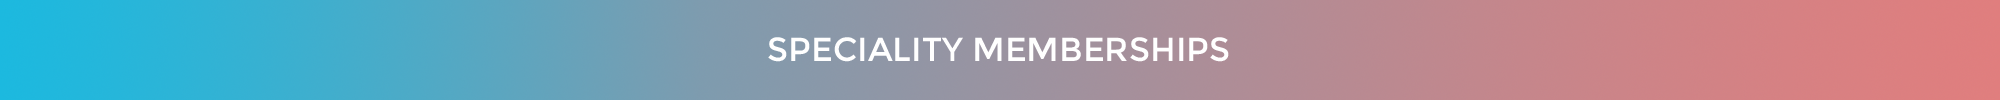 SPecialityMemberships.png